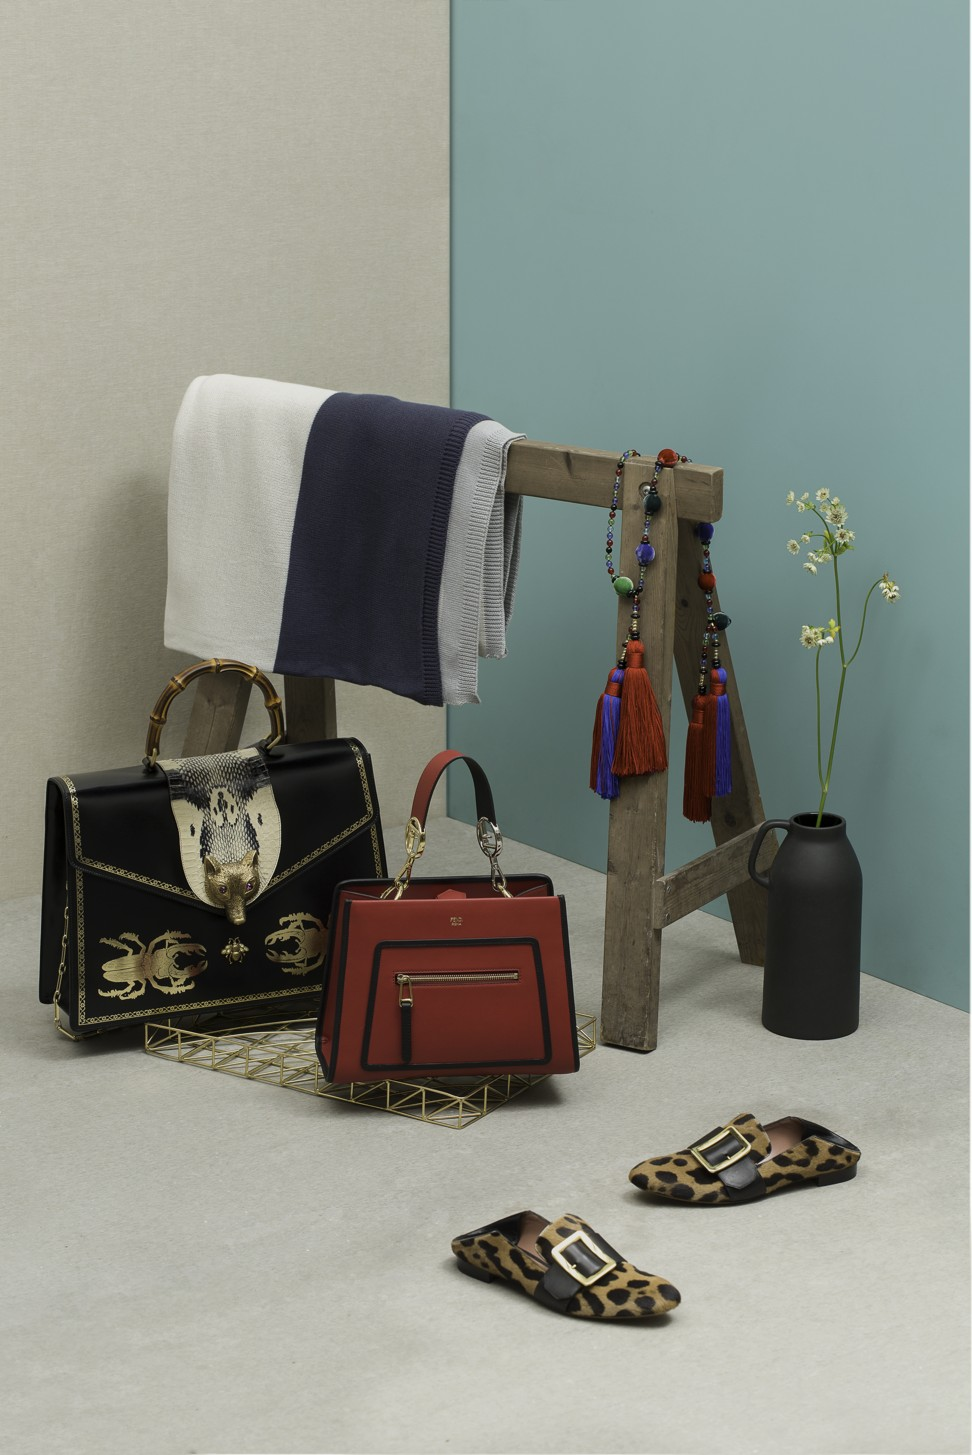 The Must Have Accessories Of Autumn Winter Post Magazine South Shanghai Gold Mini Crossbody Black Red Bag Hk15900 By Fendi Leopard Print Slippers Hk6890 Bally Tassel Necklace Hk14000 Giorgio Armani Throw Hk1240 And Tray